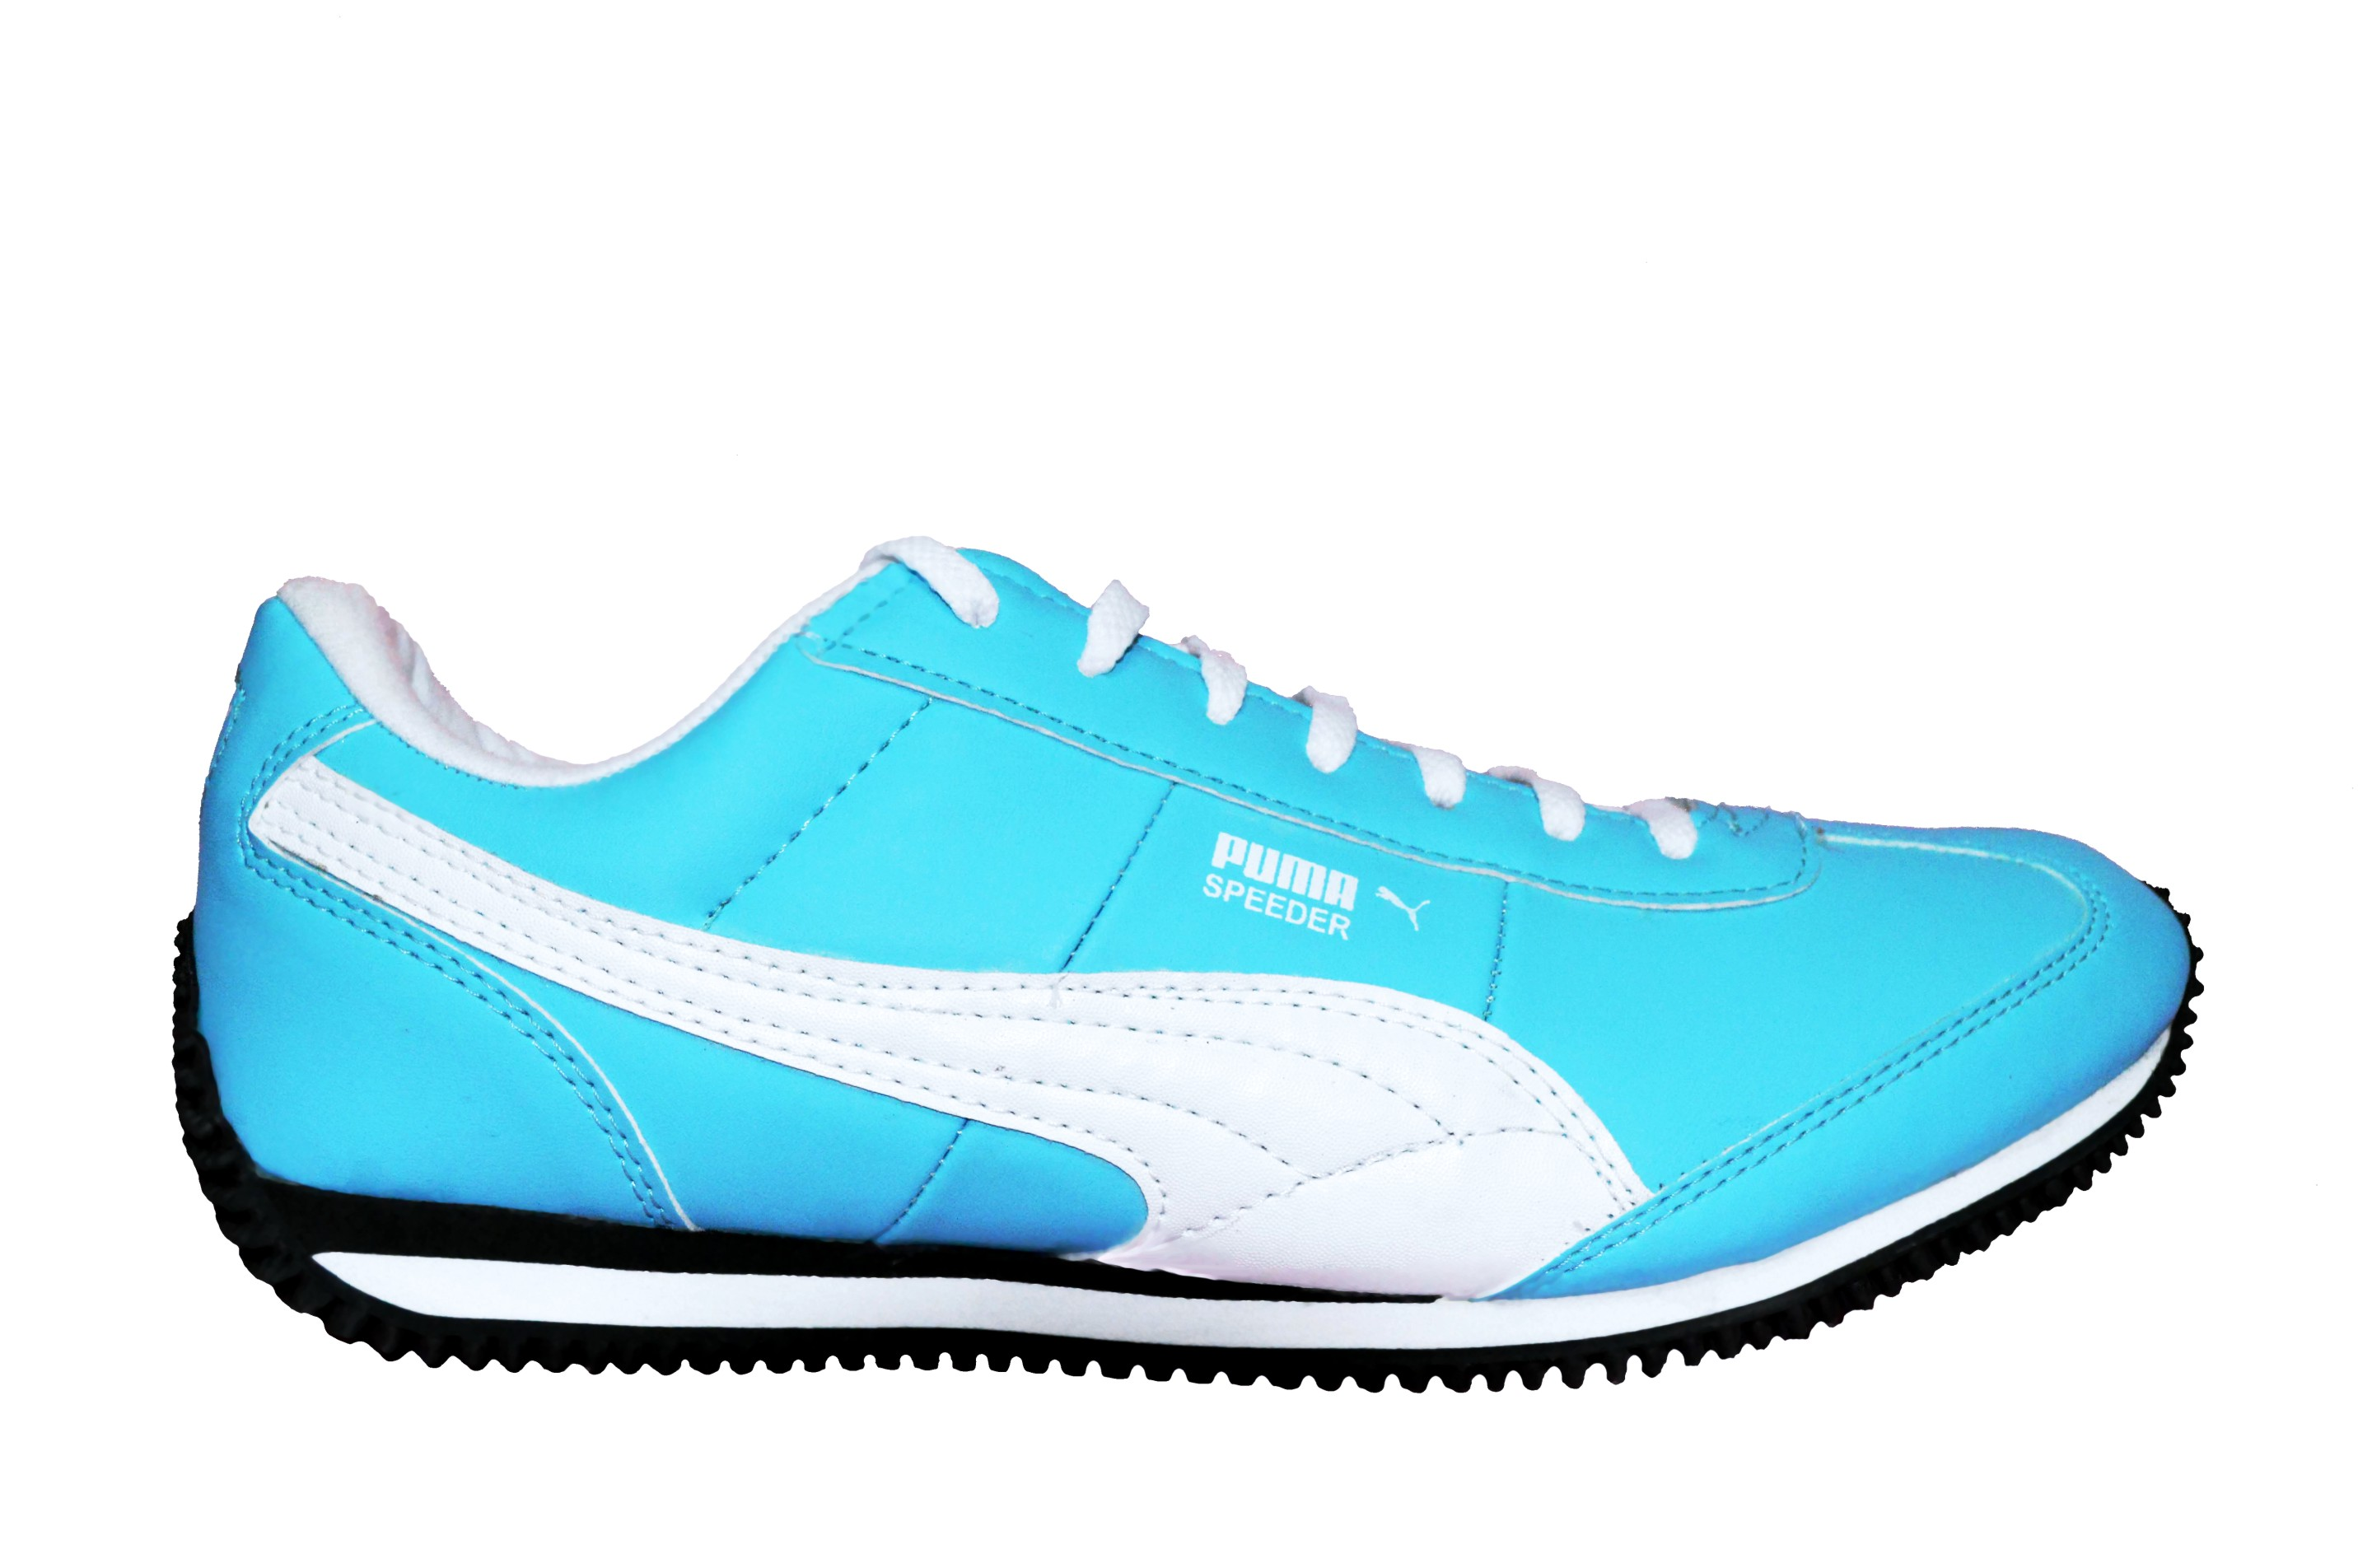 16b20448b0cb44 puma shoes snapdeal Graphic4 1399097859